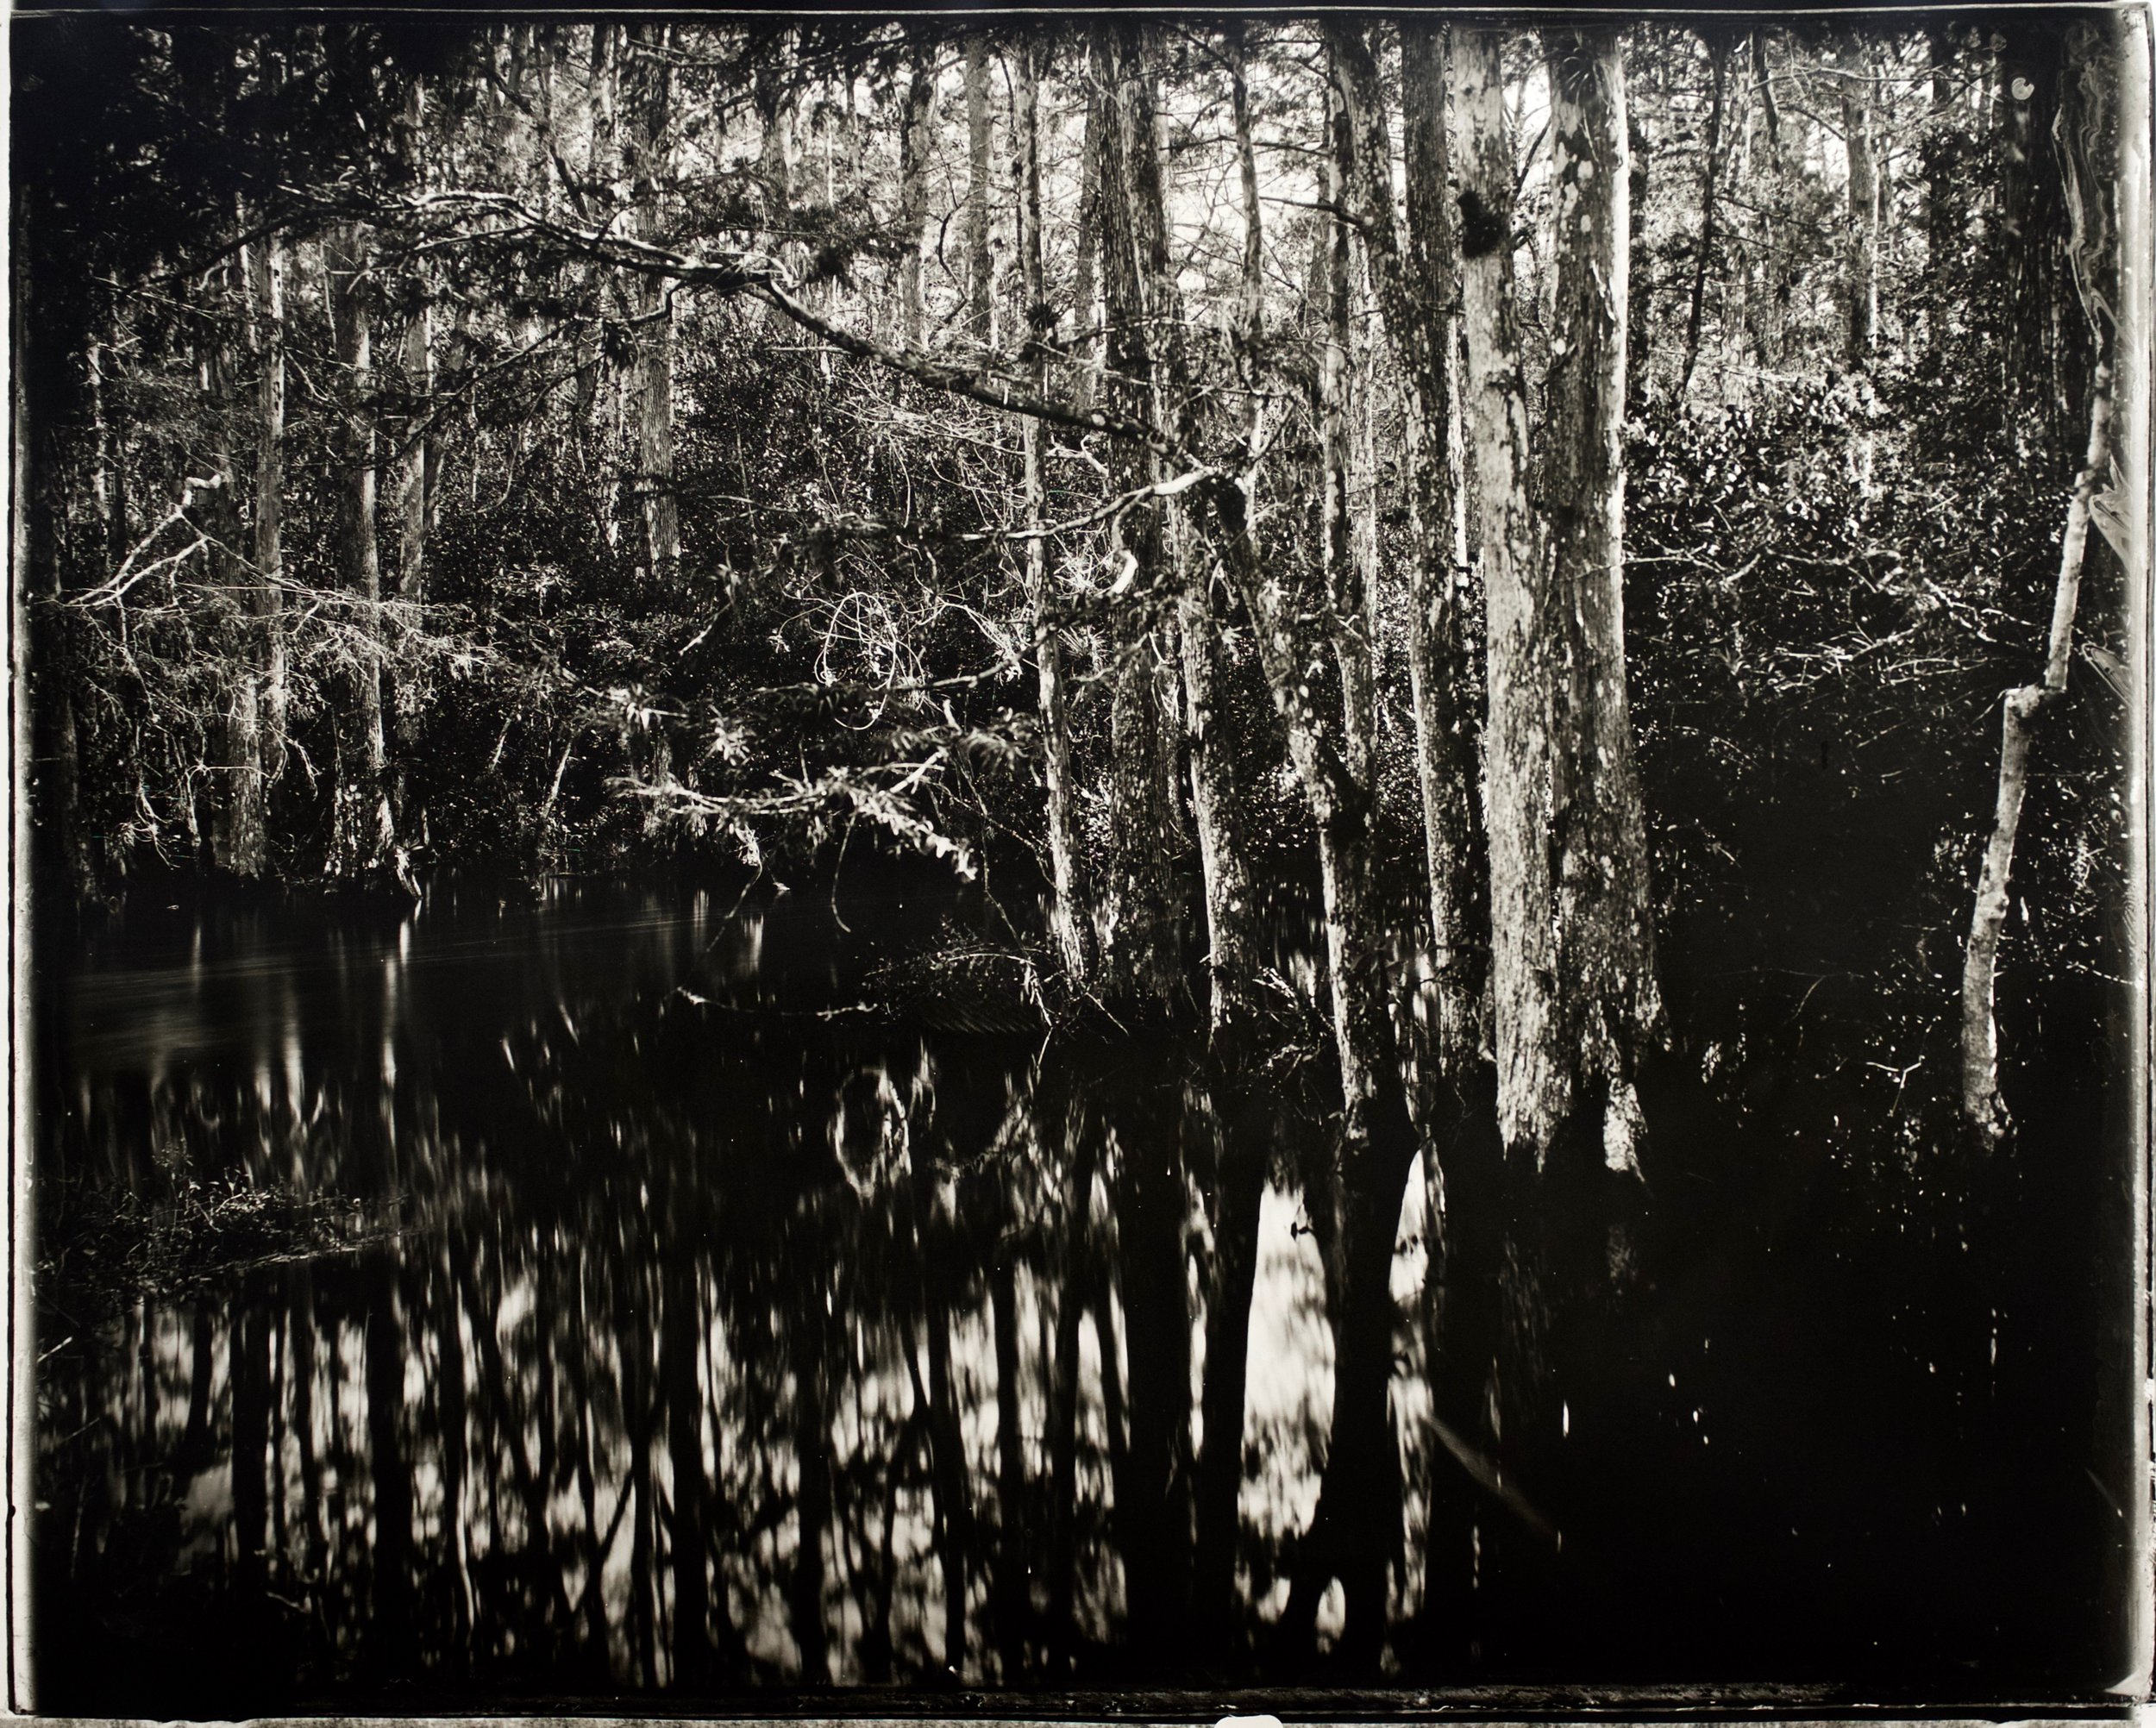 Reverse Focus Everglades 37 in. x 30 in., collodian negative hand printed on Fomatone paper, 2018. 2018-21.jpg